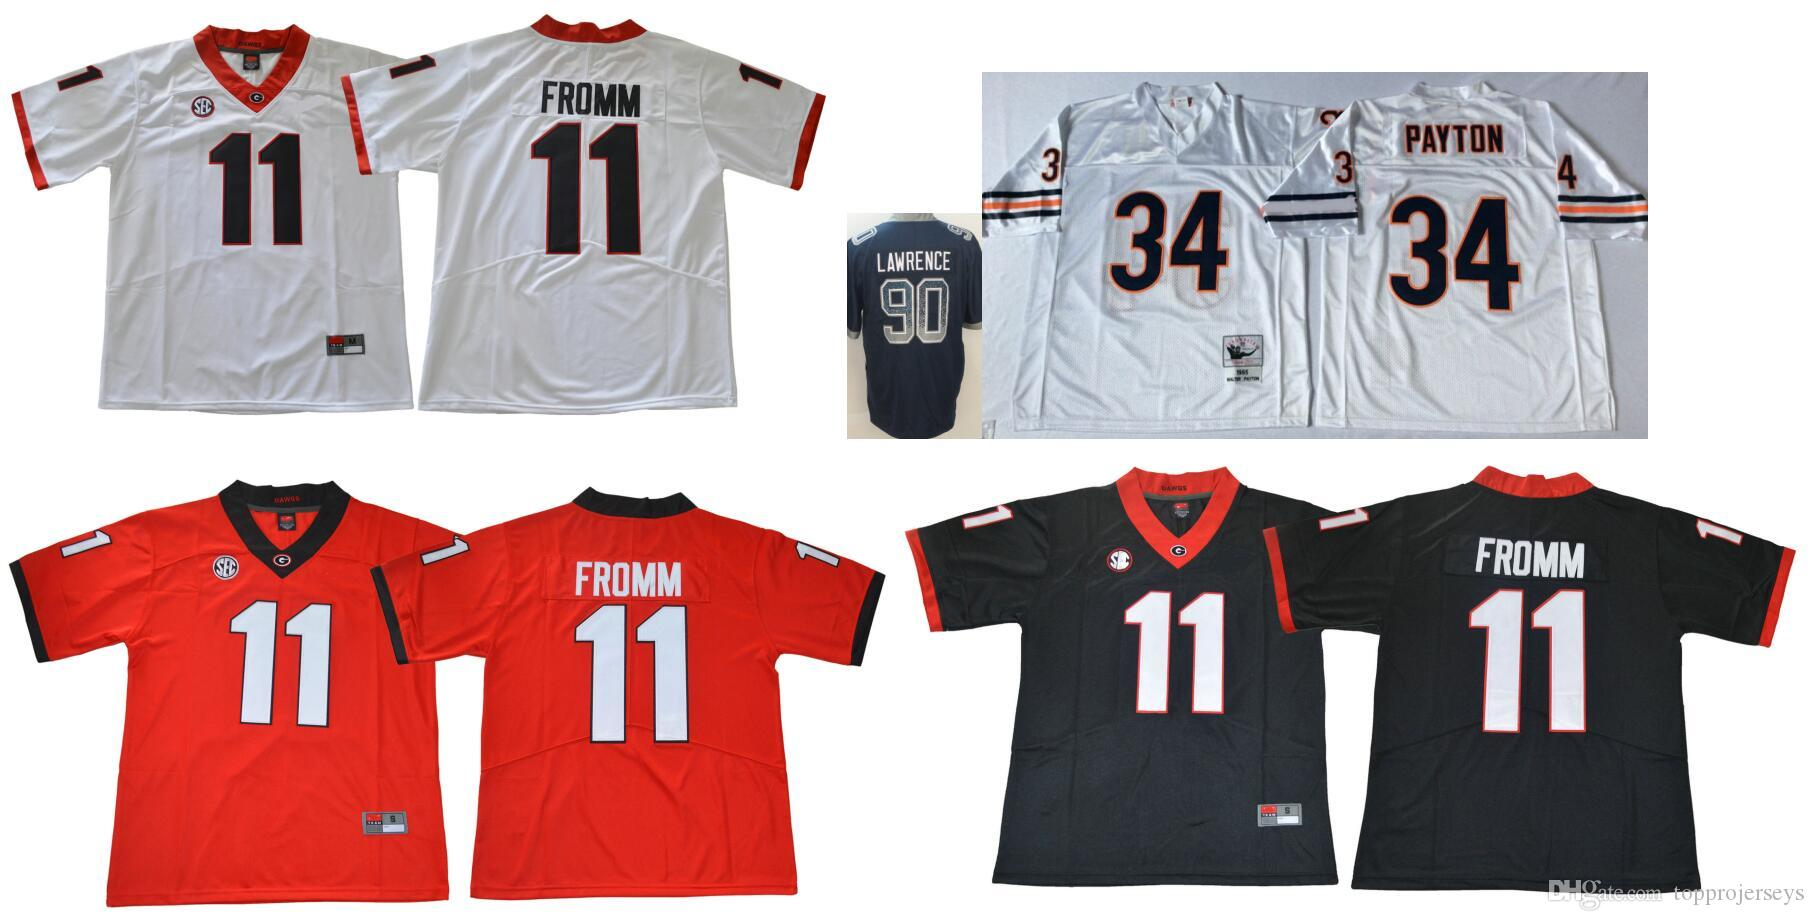 promo code 3e3eb c9ccf Georgia Bulldogs #11 Jake Fromm Mens Vintage College 90 DeMarcus Lawrence  Chicago 34 Walter Payton Color Rush American Football Jerseys